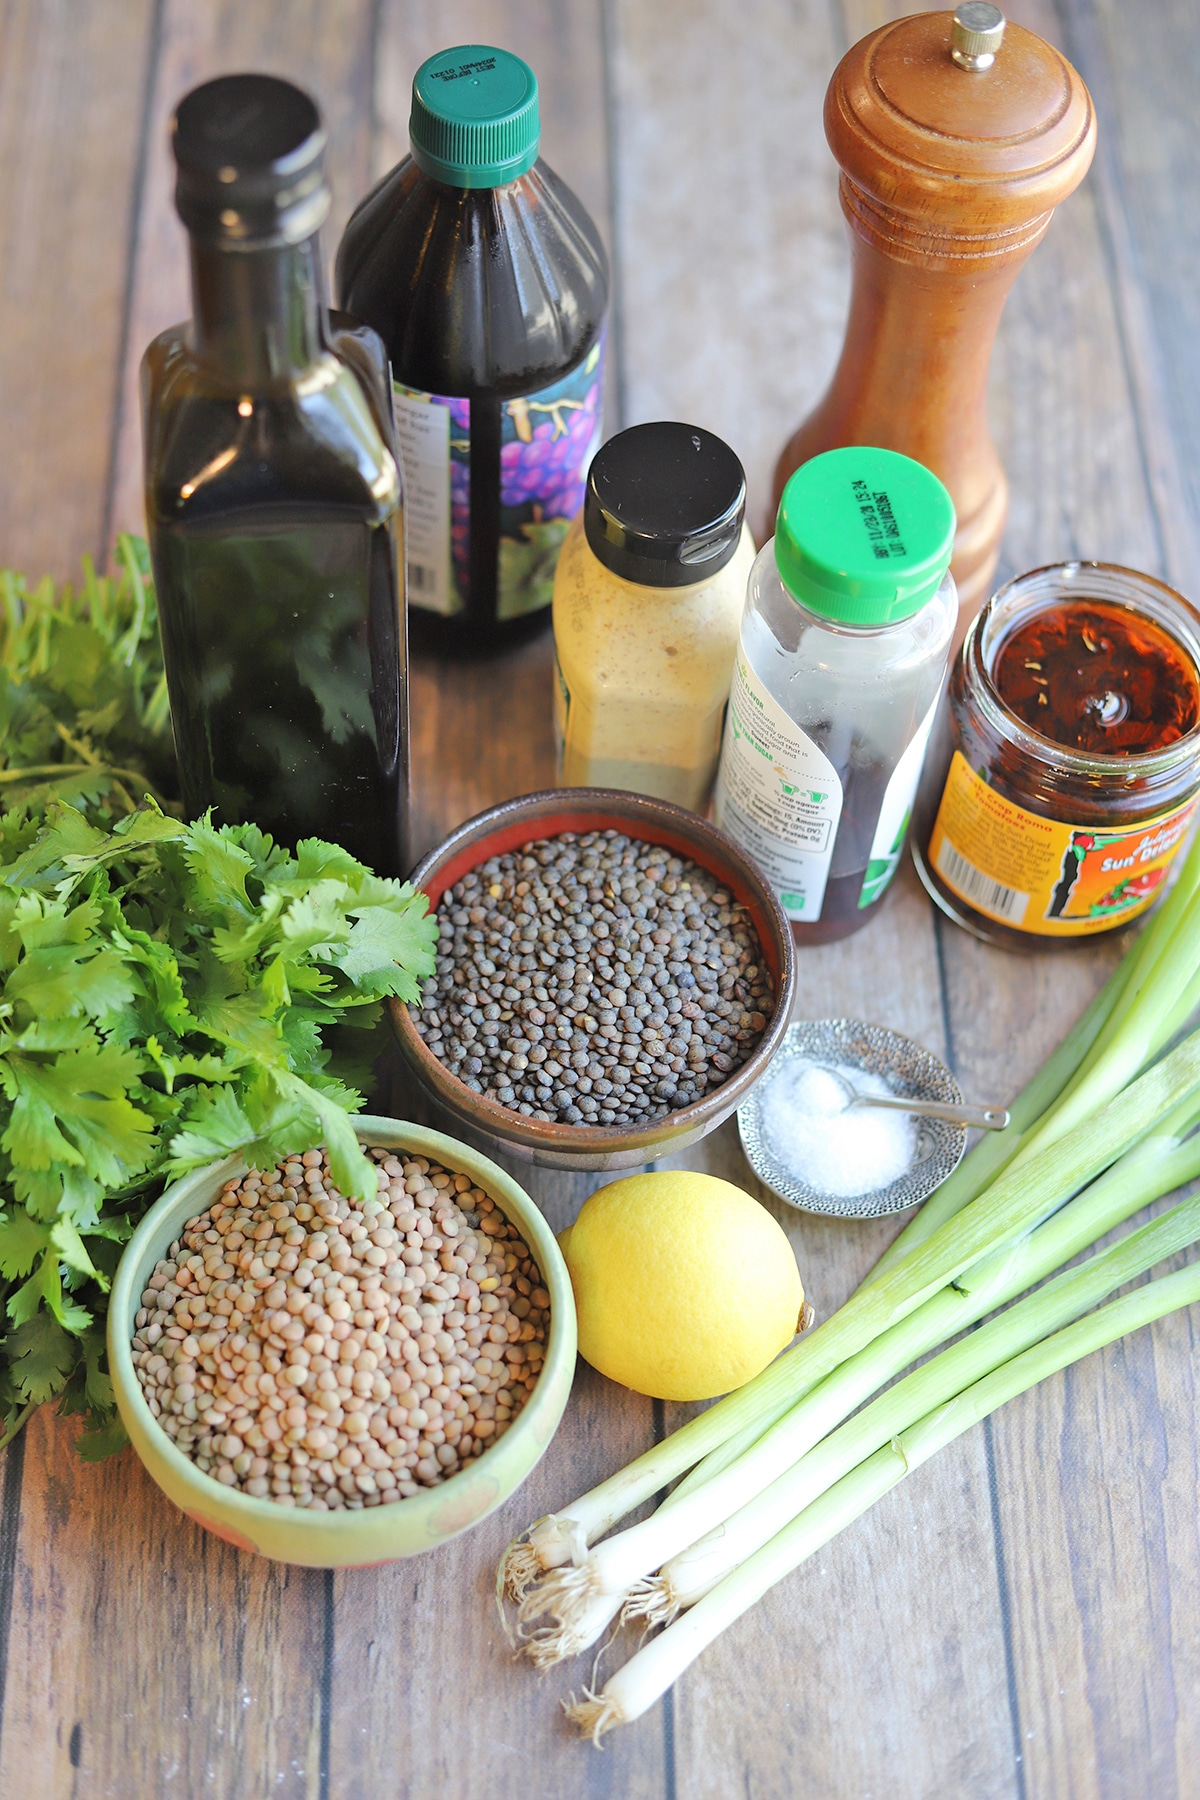 Ingredients for lentil salad on table.